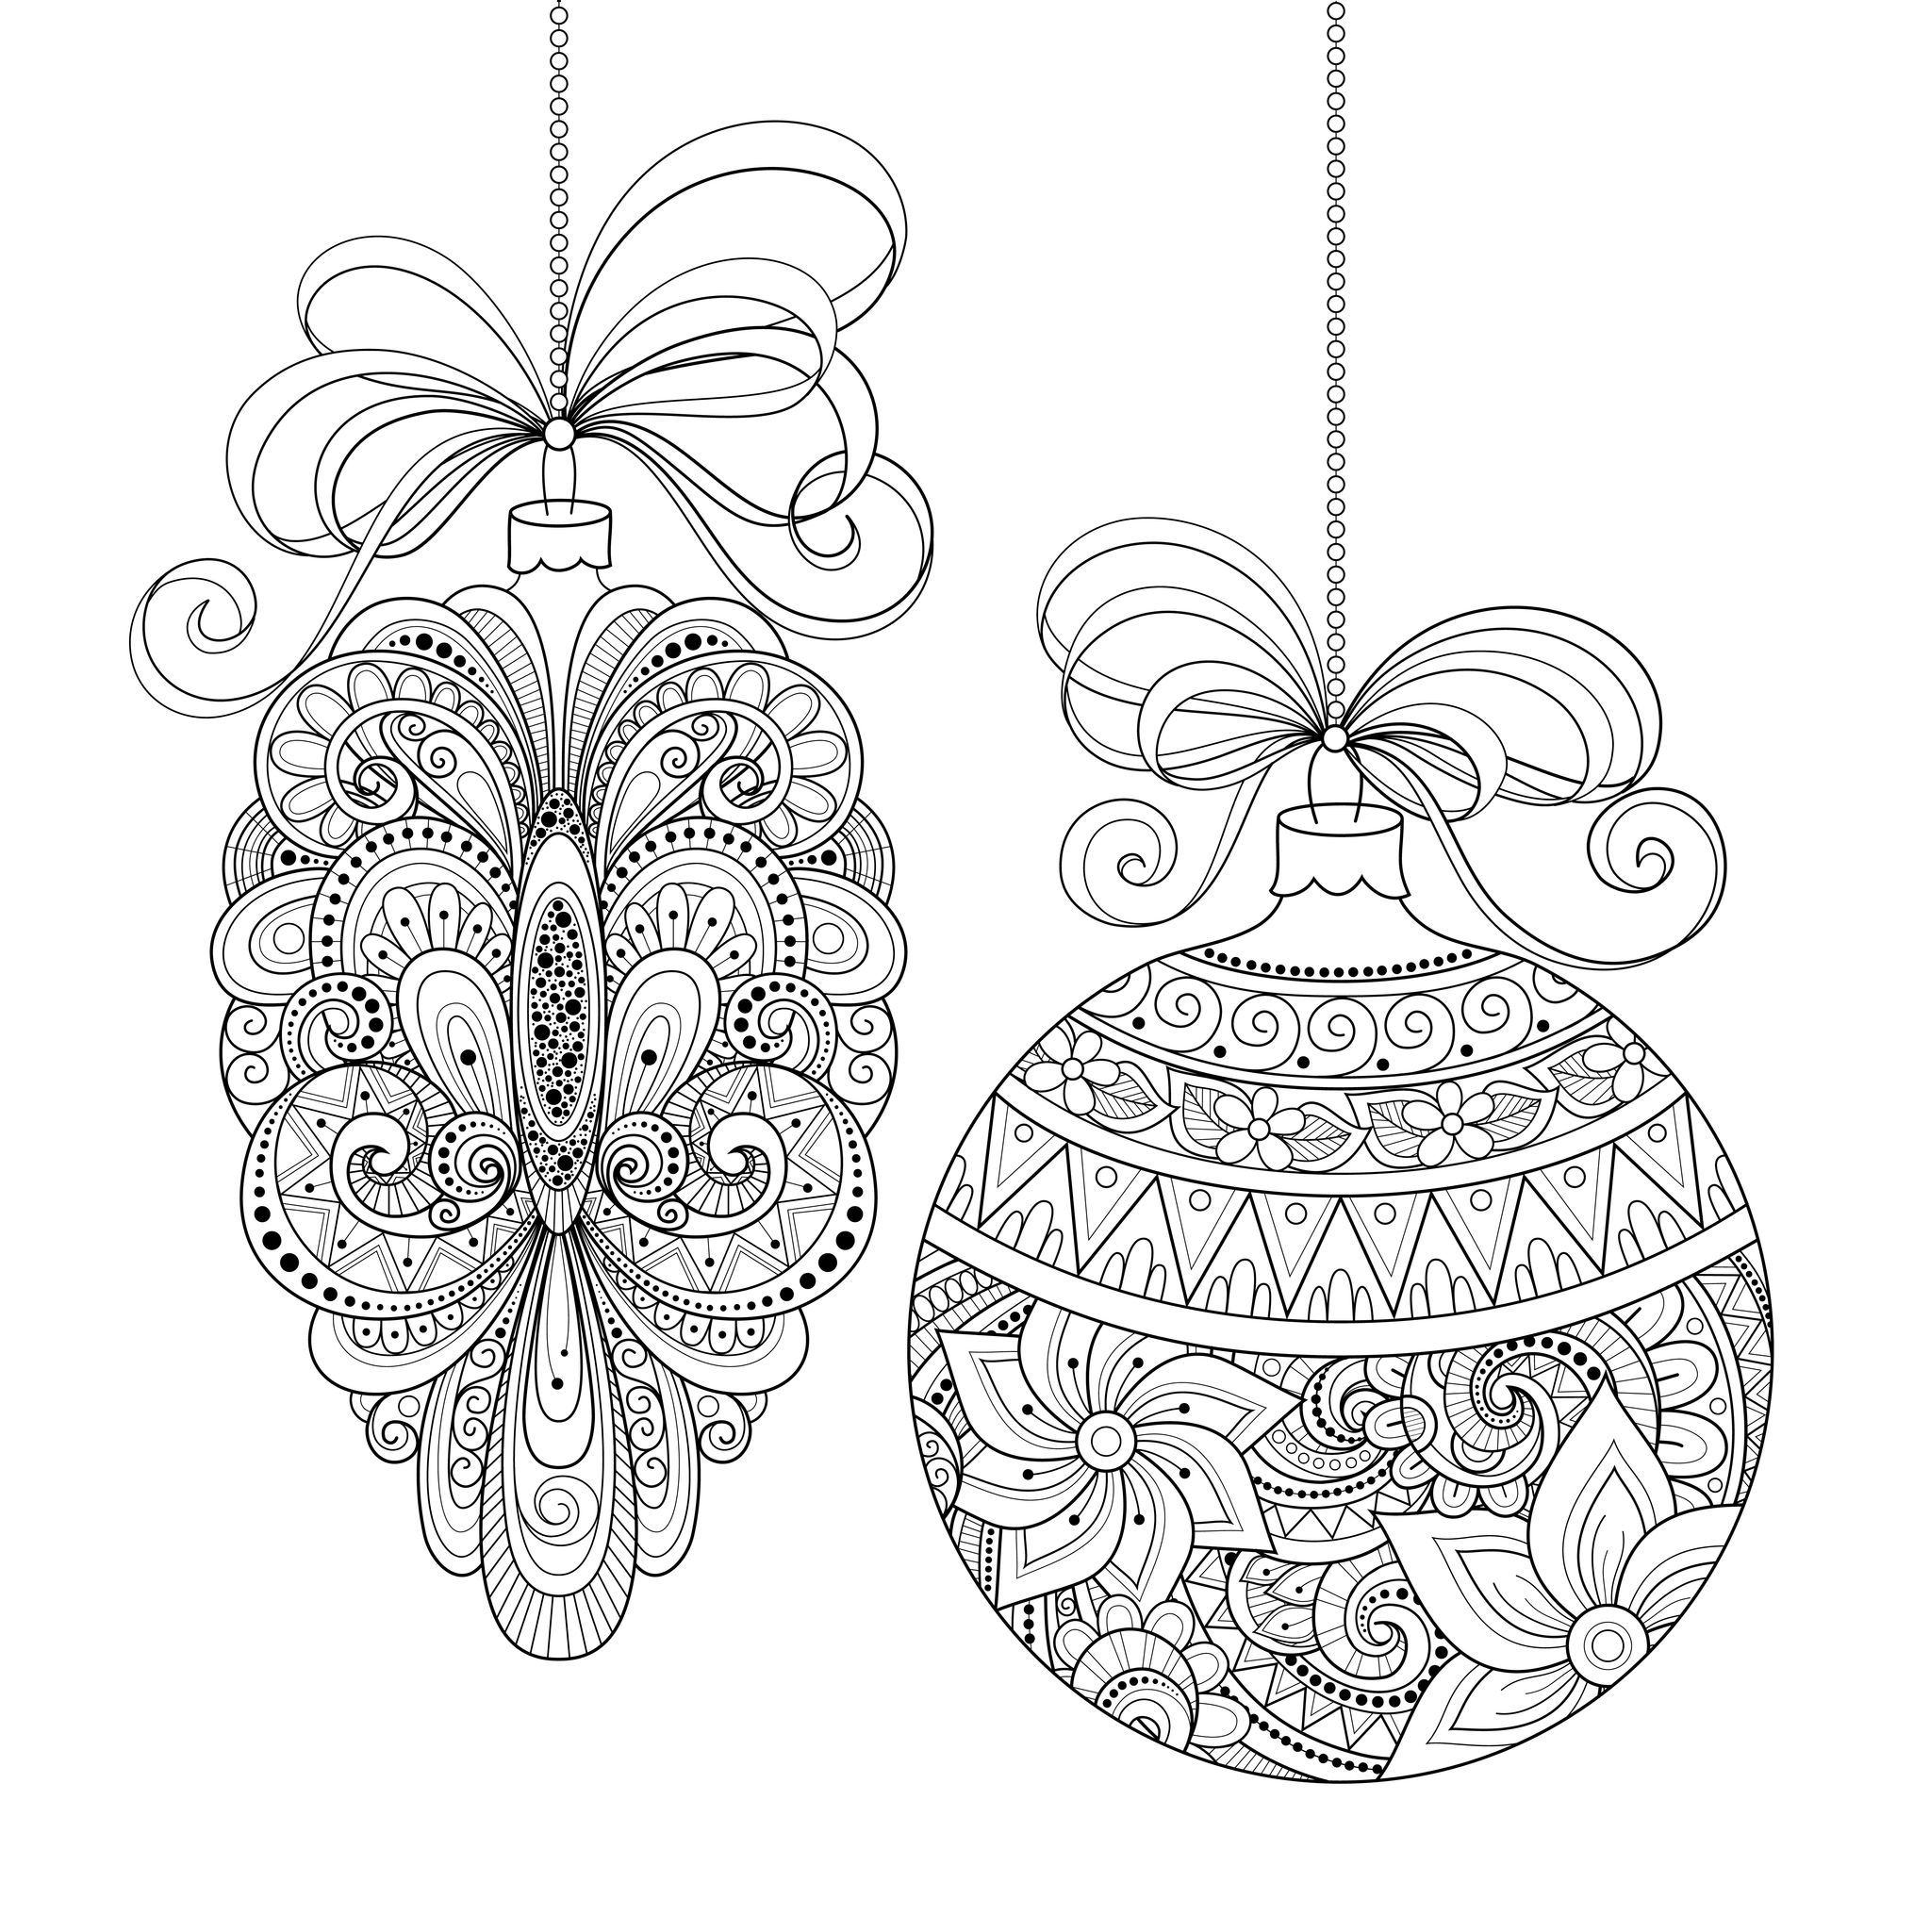 photograph about Christmas Ornaments Coloring Pages Printable titled Xmas ornaments - Xmas Grownup Coloring Webpages